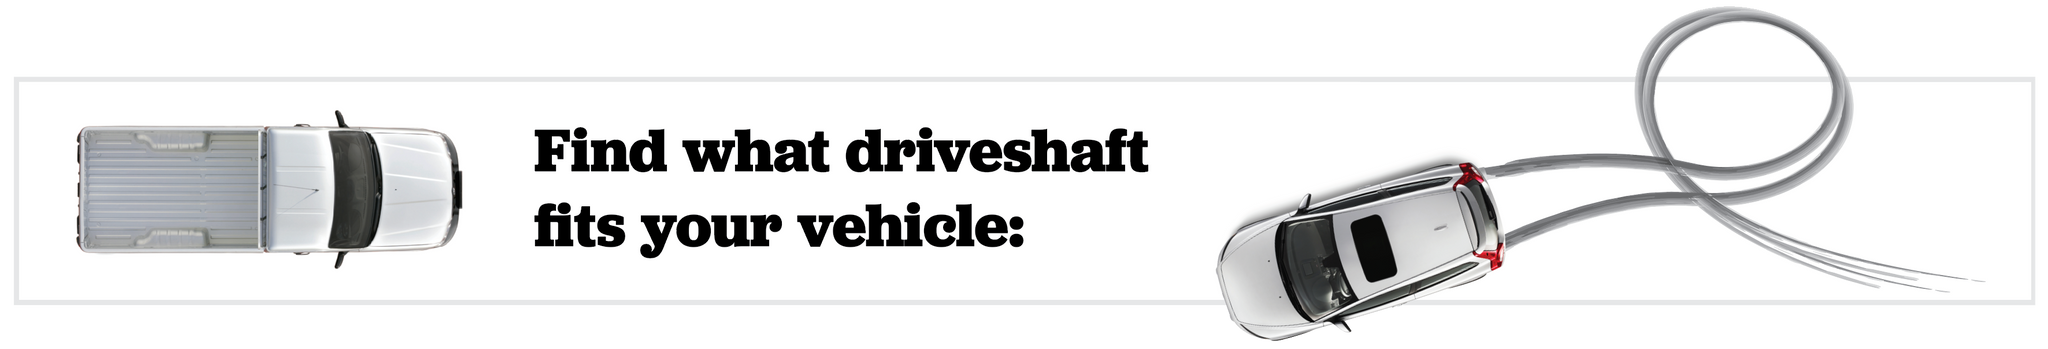 Find what driveshaft fits your vehicle: